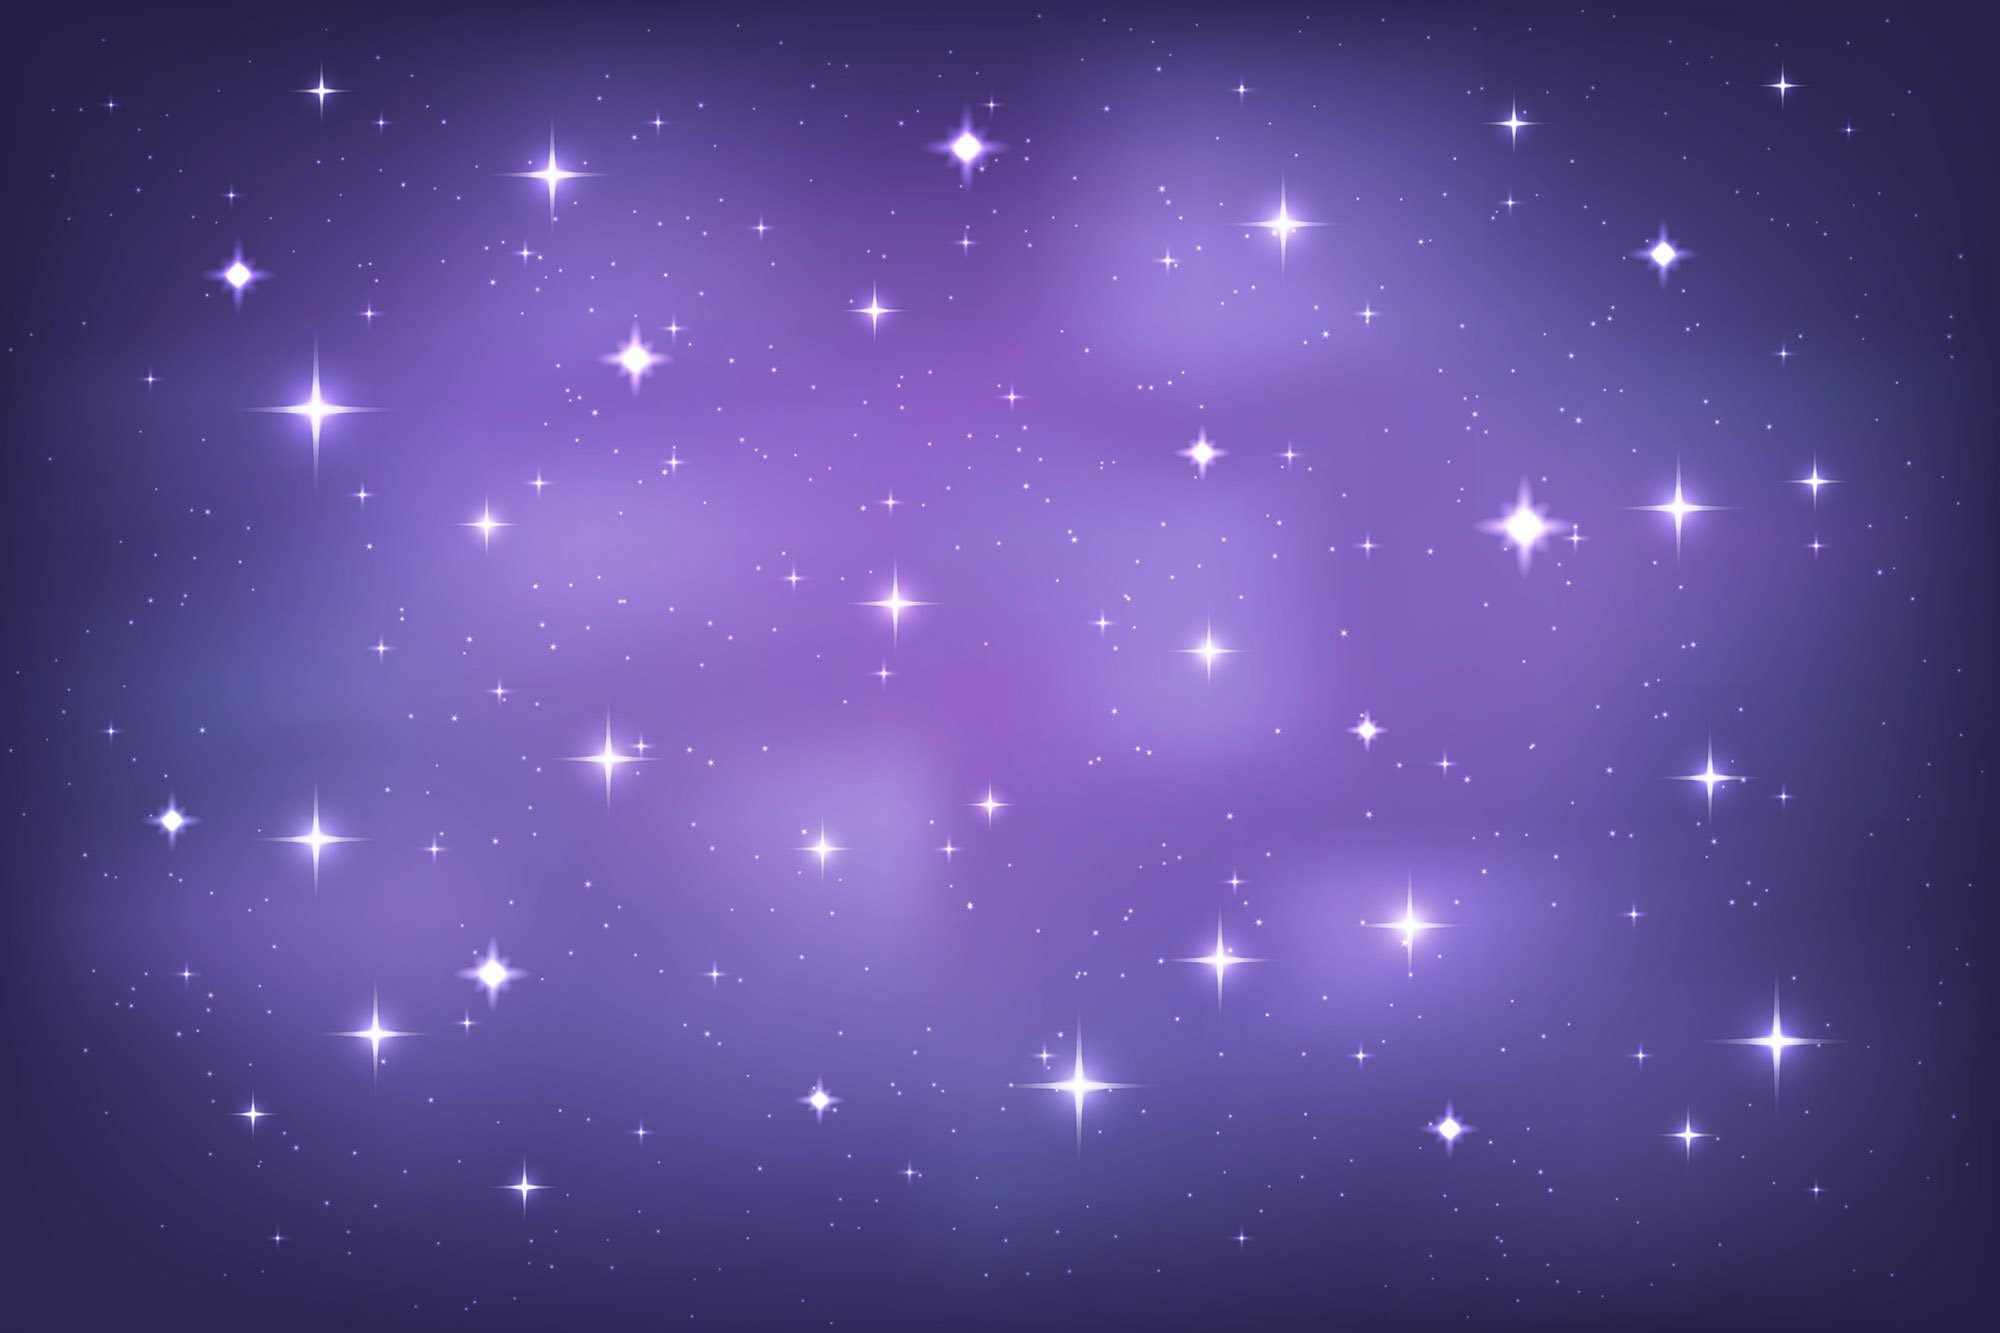 Purple Vast Universe Starry Sky Bokeh Background For Baby